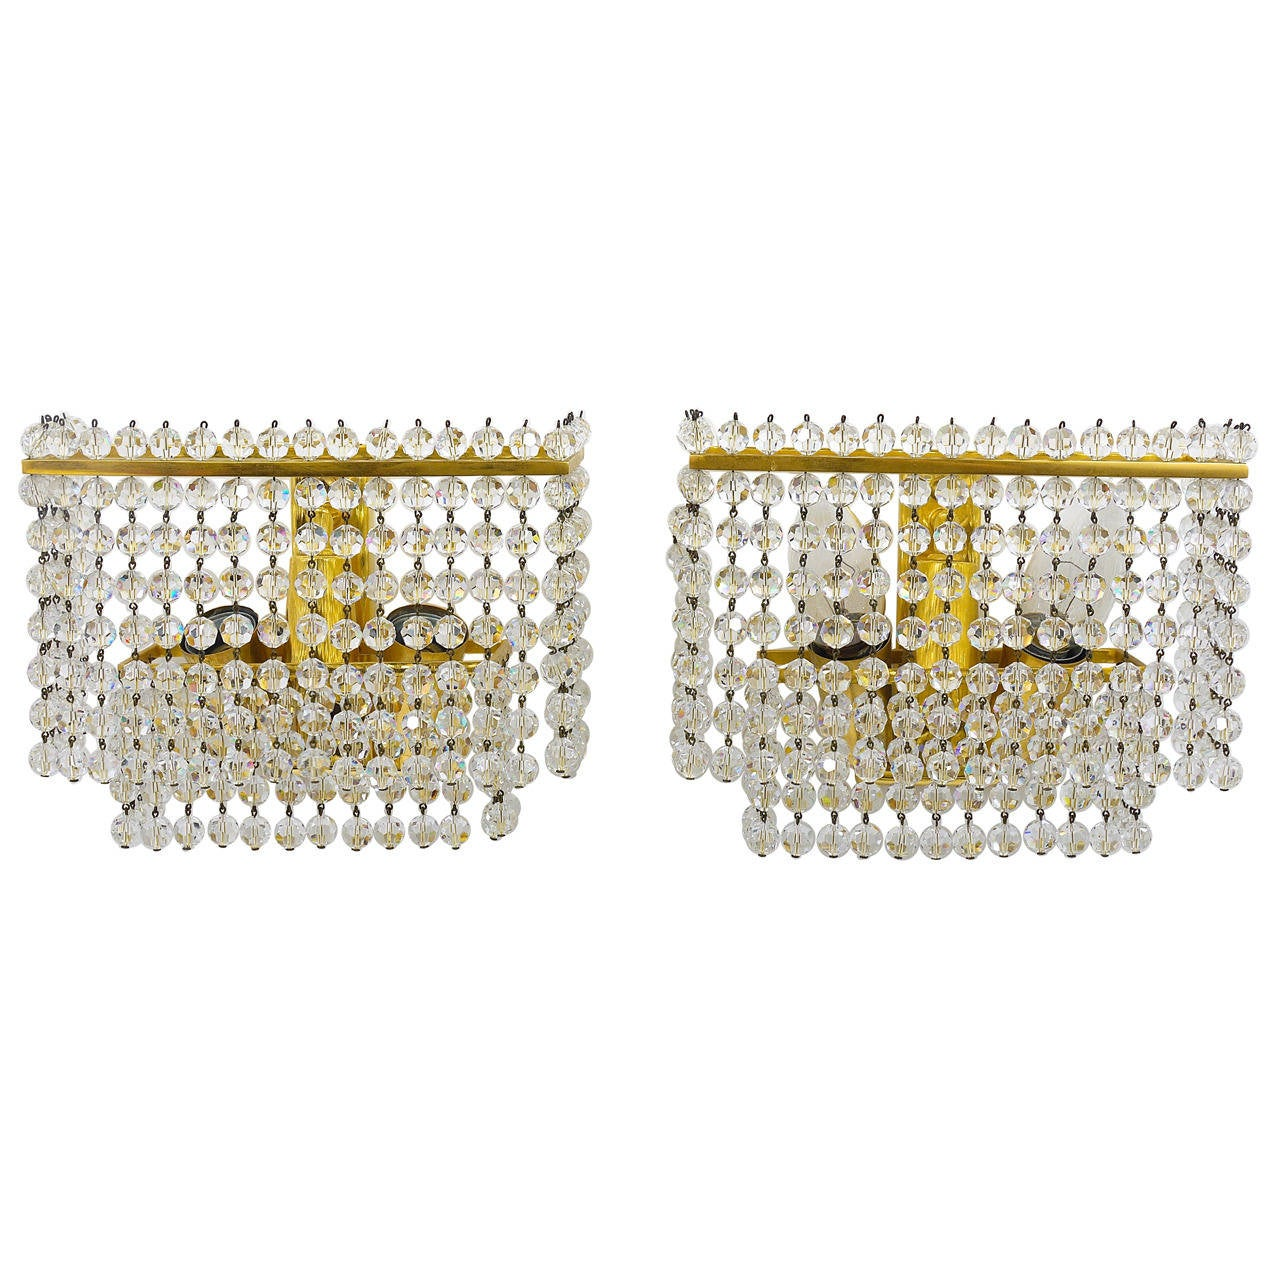 Pair of Lobmeyr Square Gold-Plated Brass Sconces with Hand-Cut Crystals, 1970s  For Sale